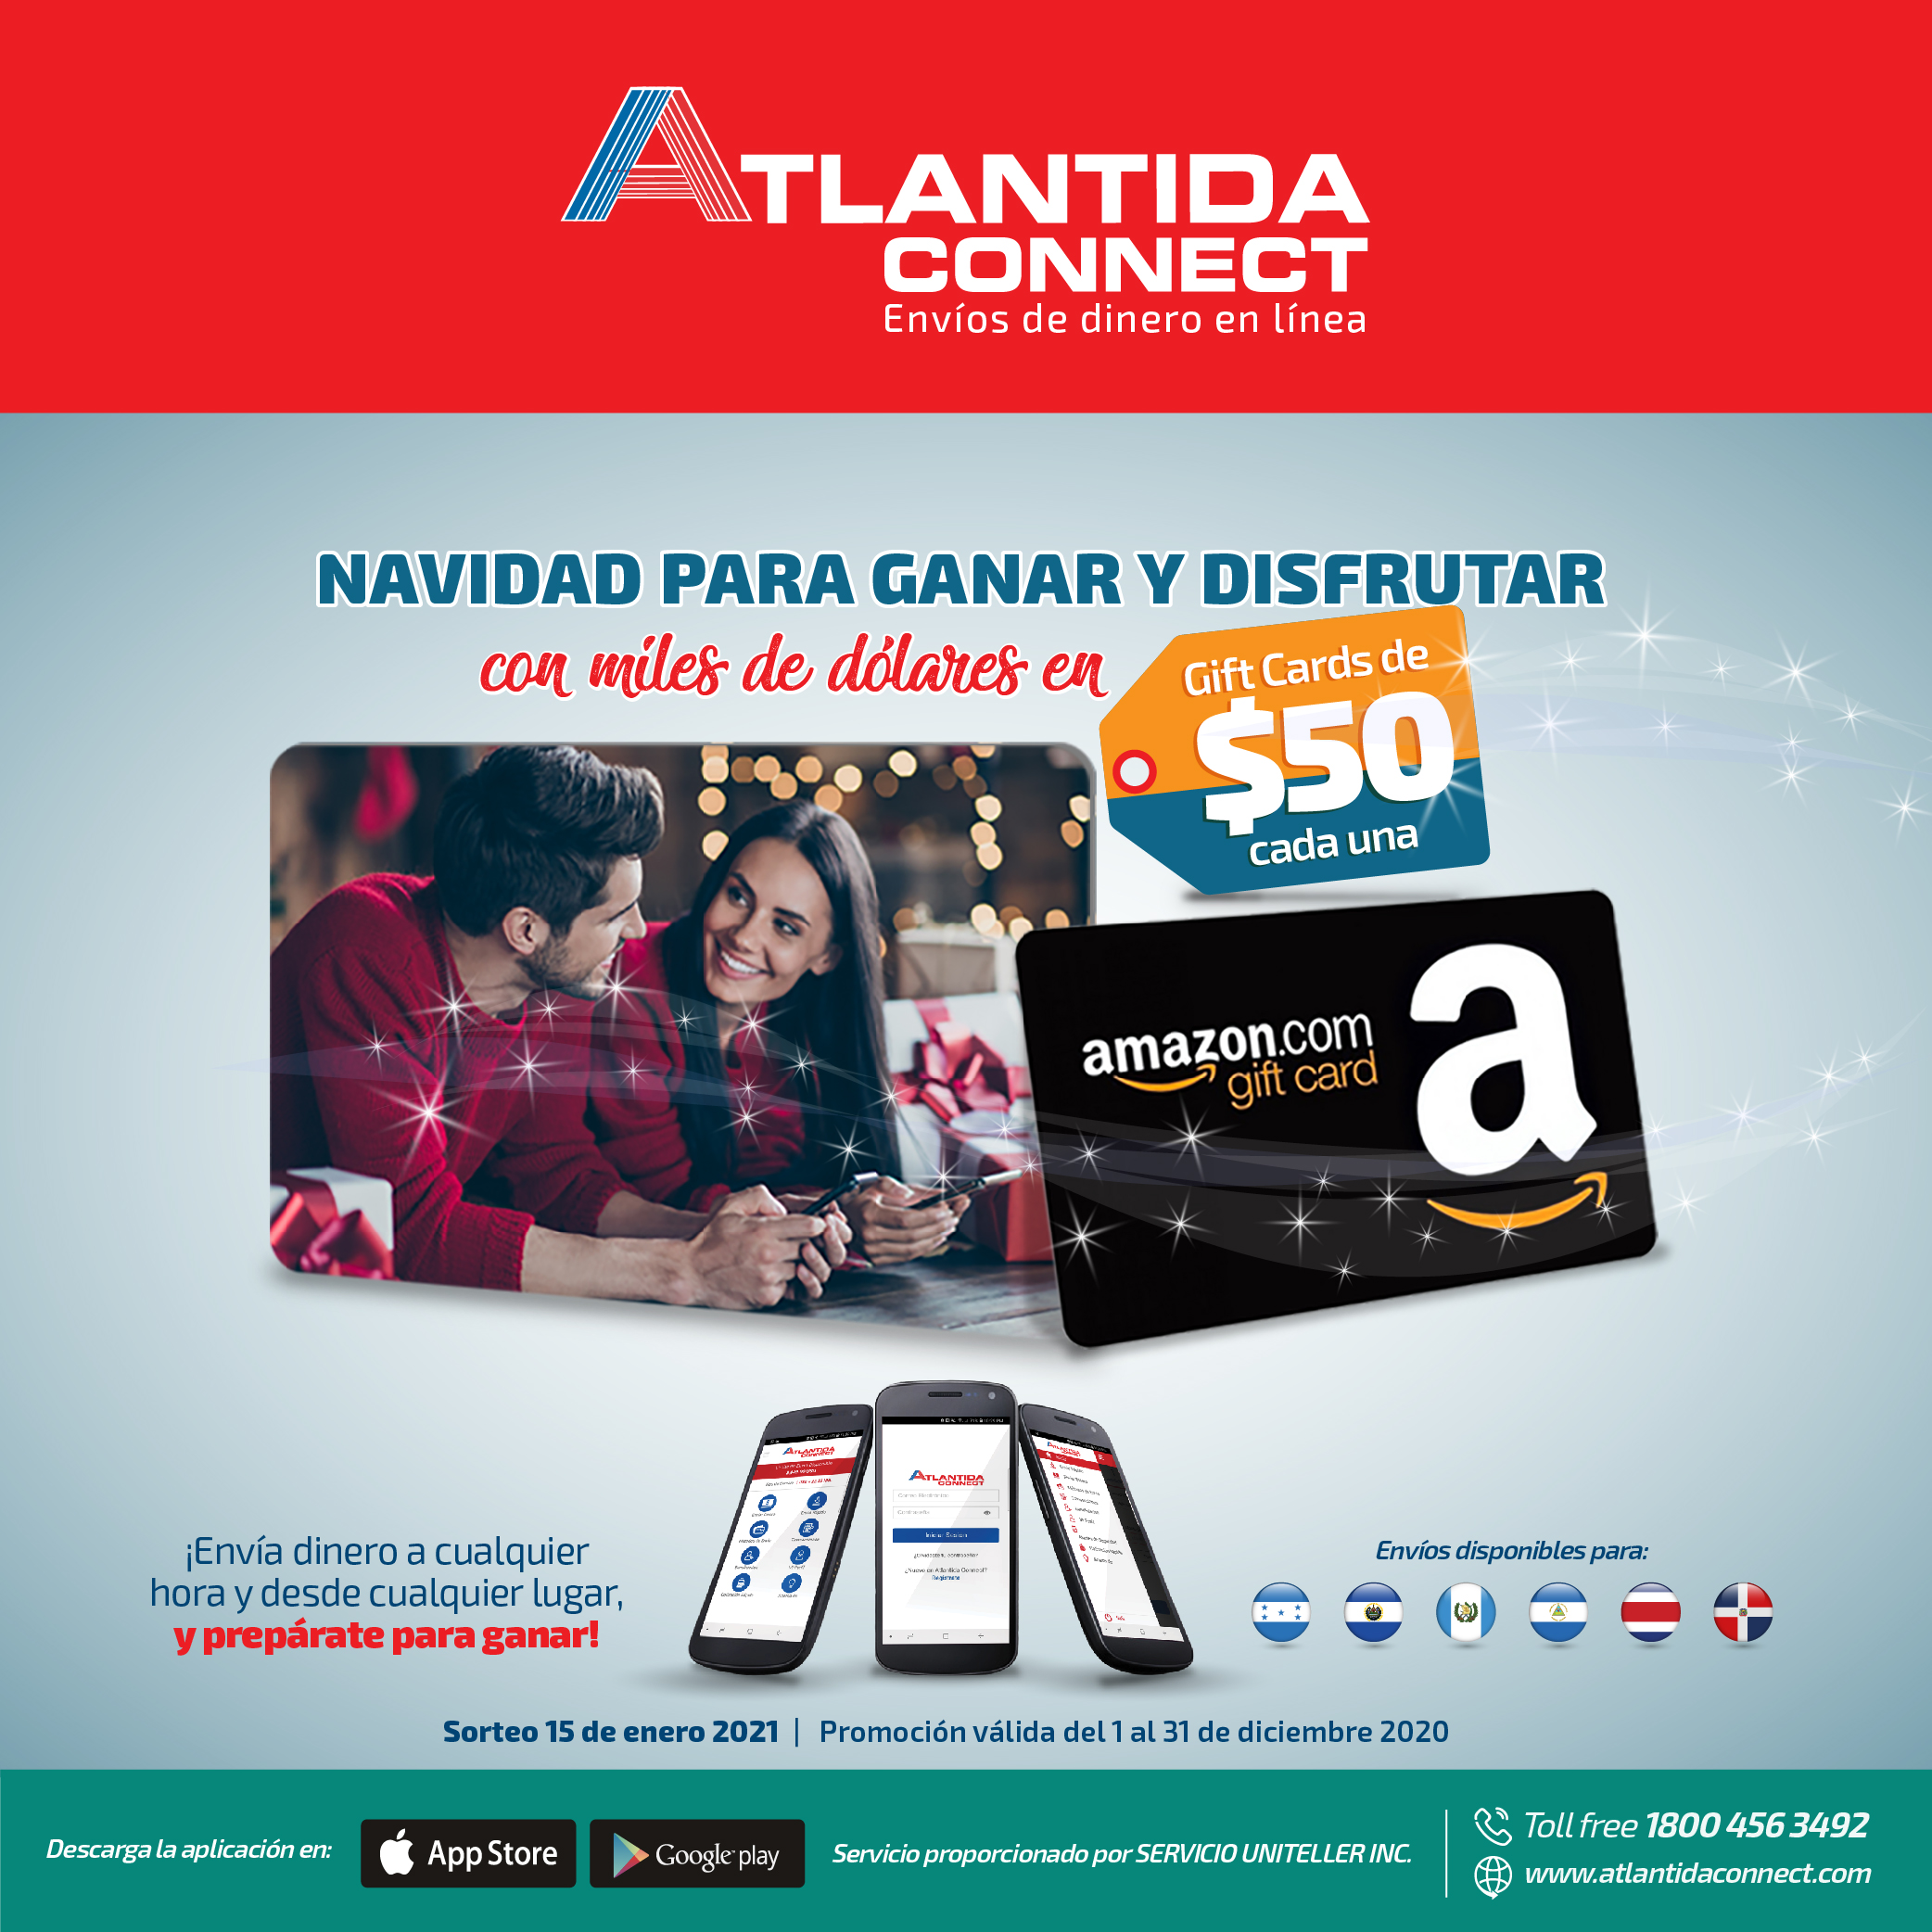 Atlantida Connect tarjetas